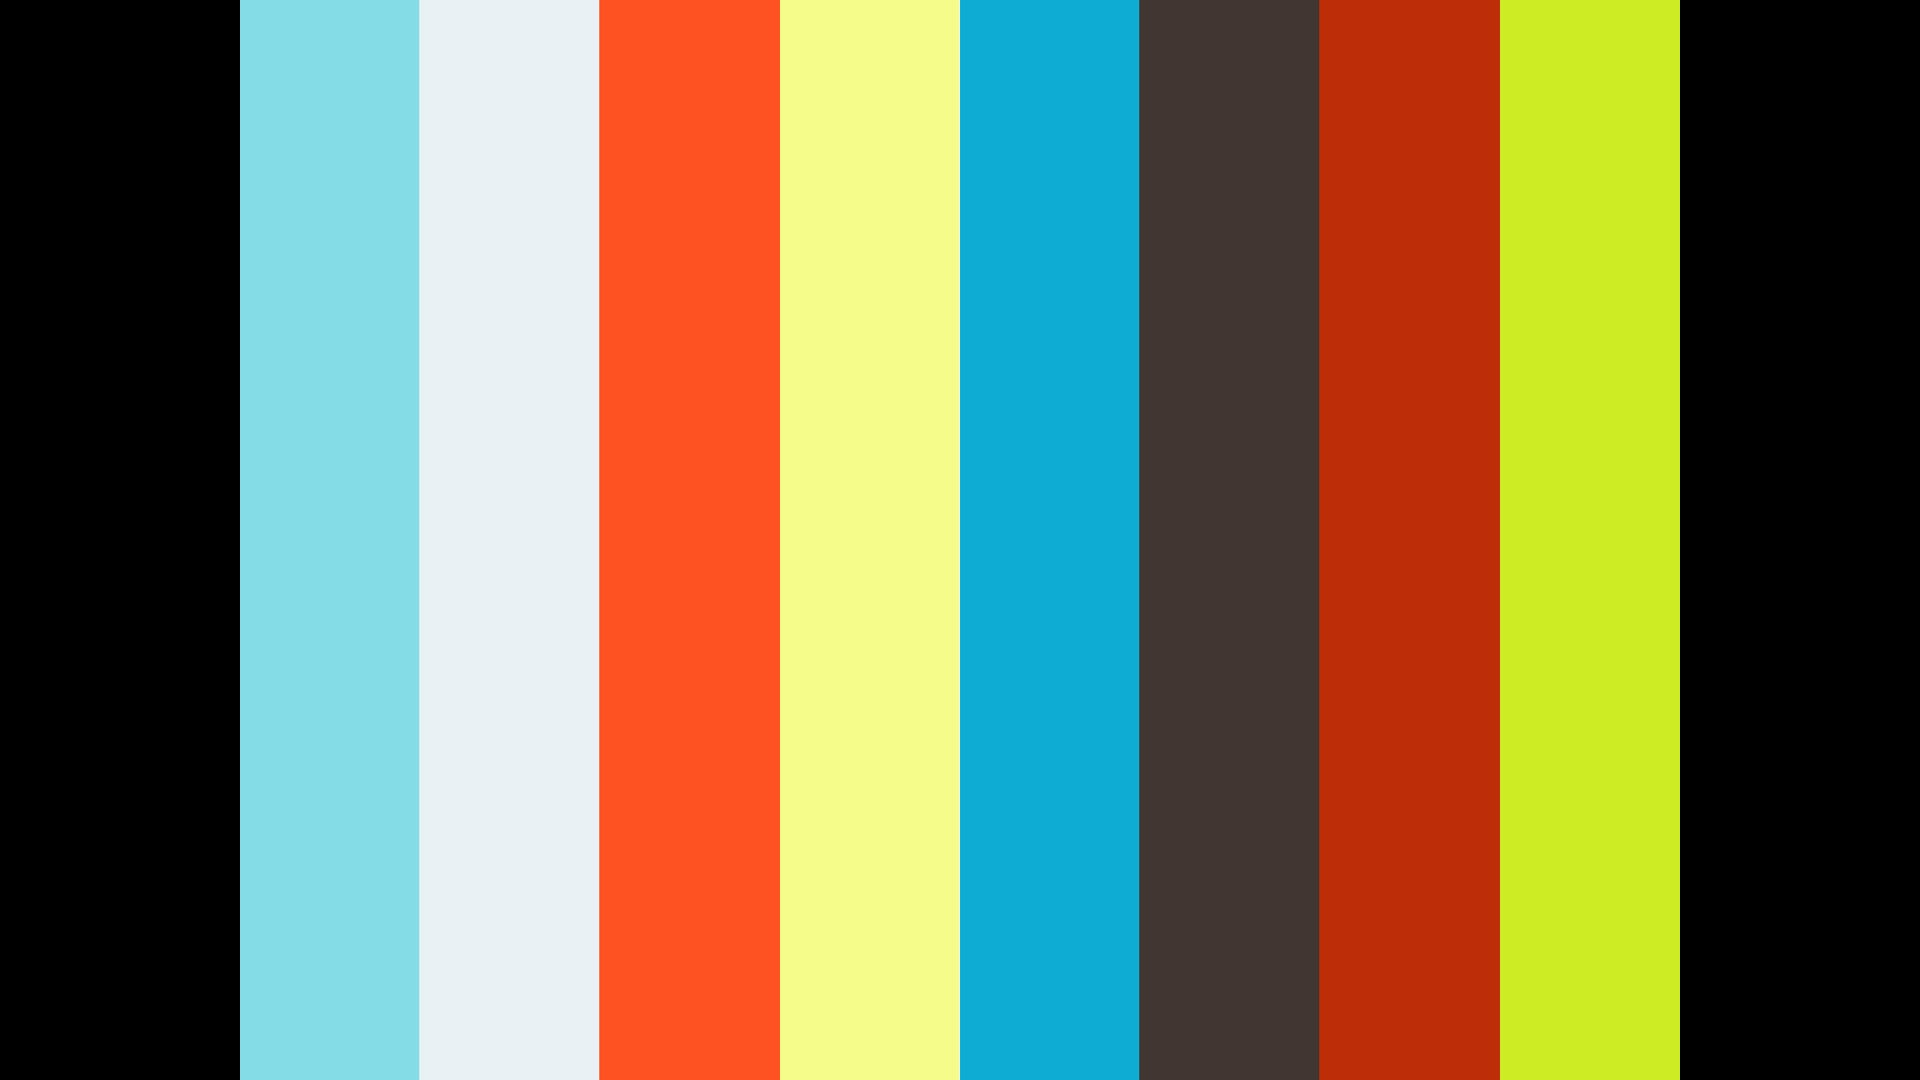 Ode to Number 14: Johan Cruijff